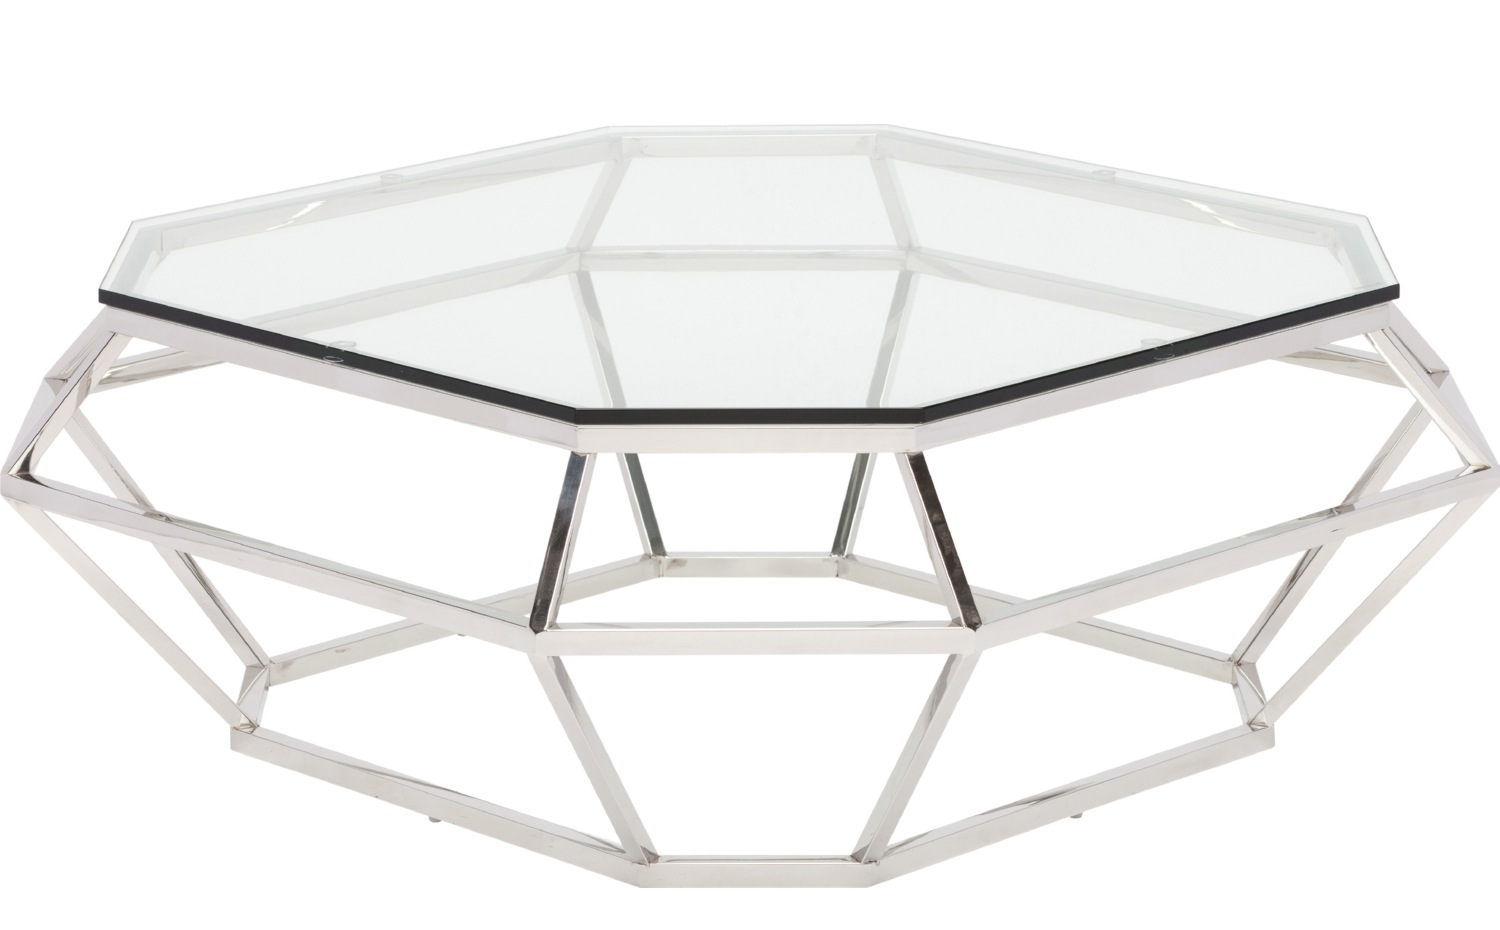 diamond-square-coffee-table-stainless-steel.jpg